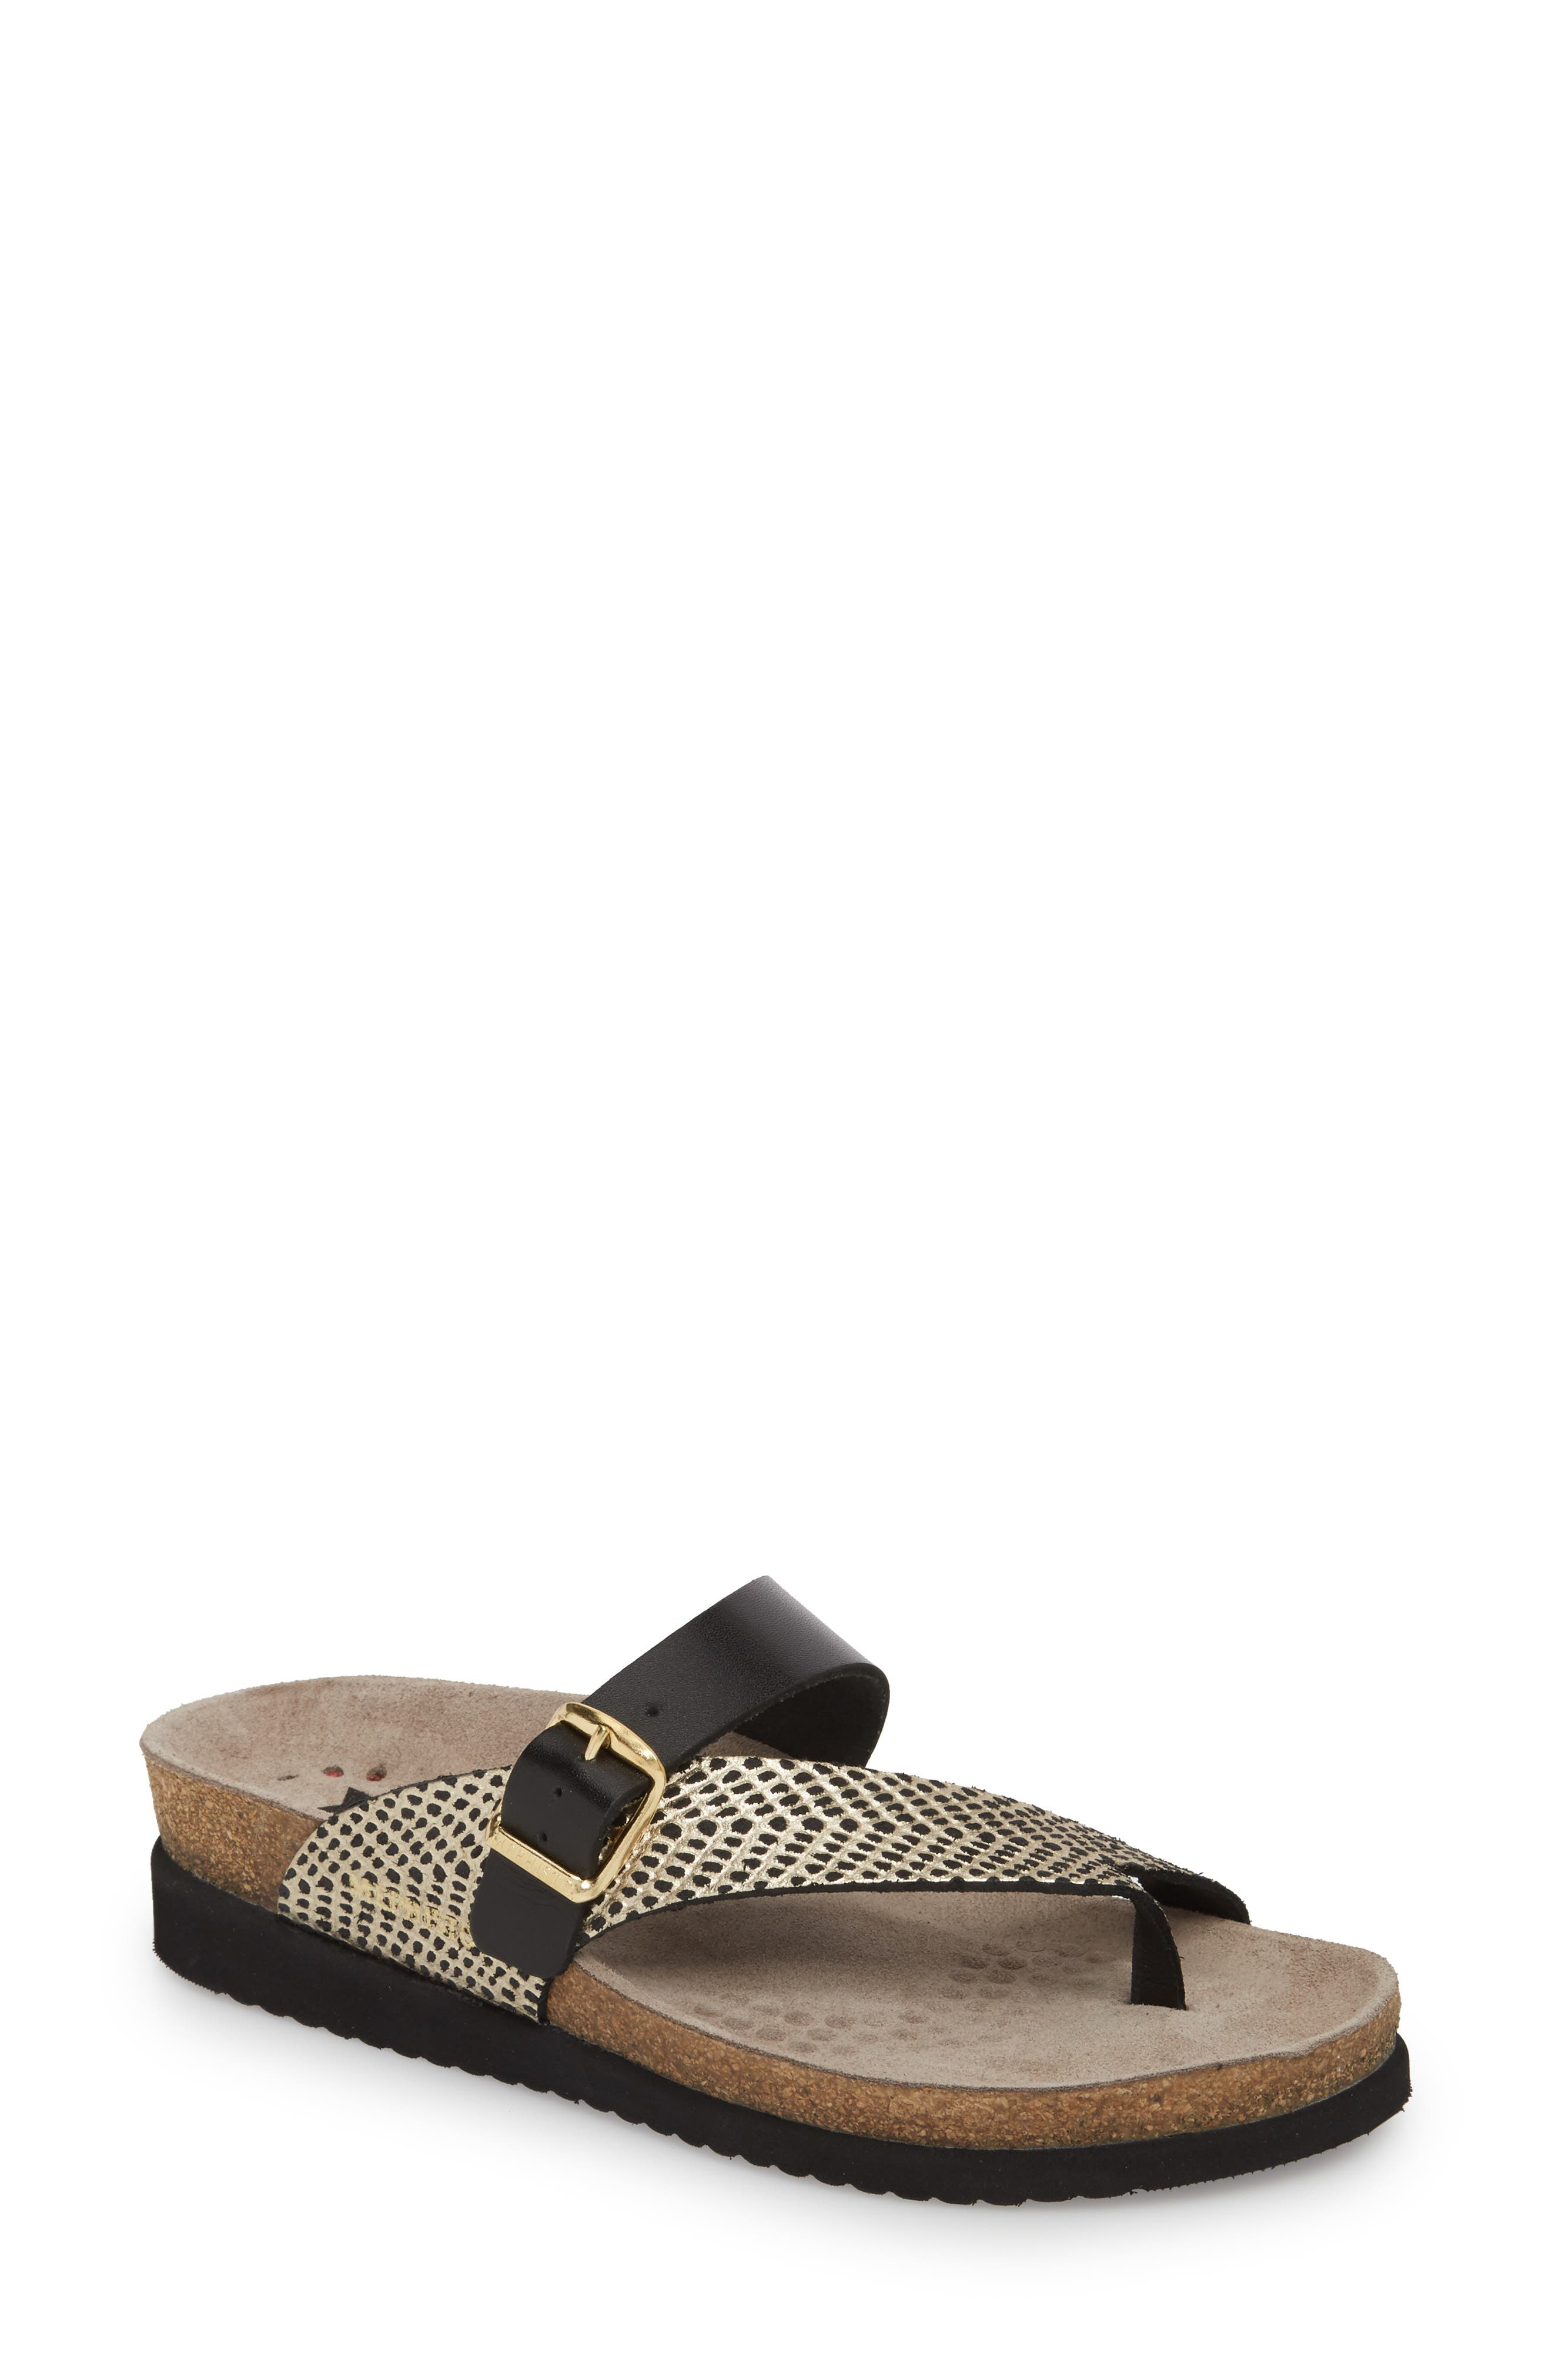 Helen Mix Sandal,                         Main,                         color, BLACK/ GOLD